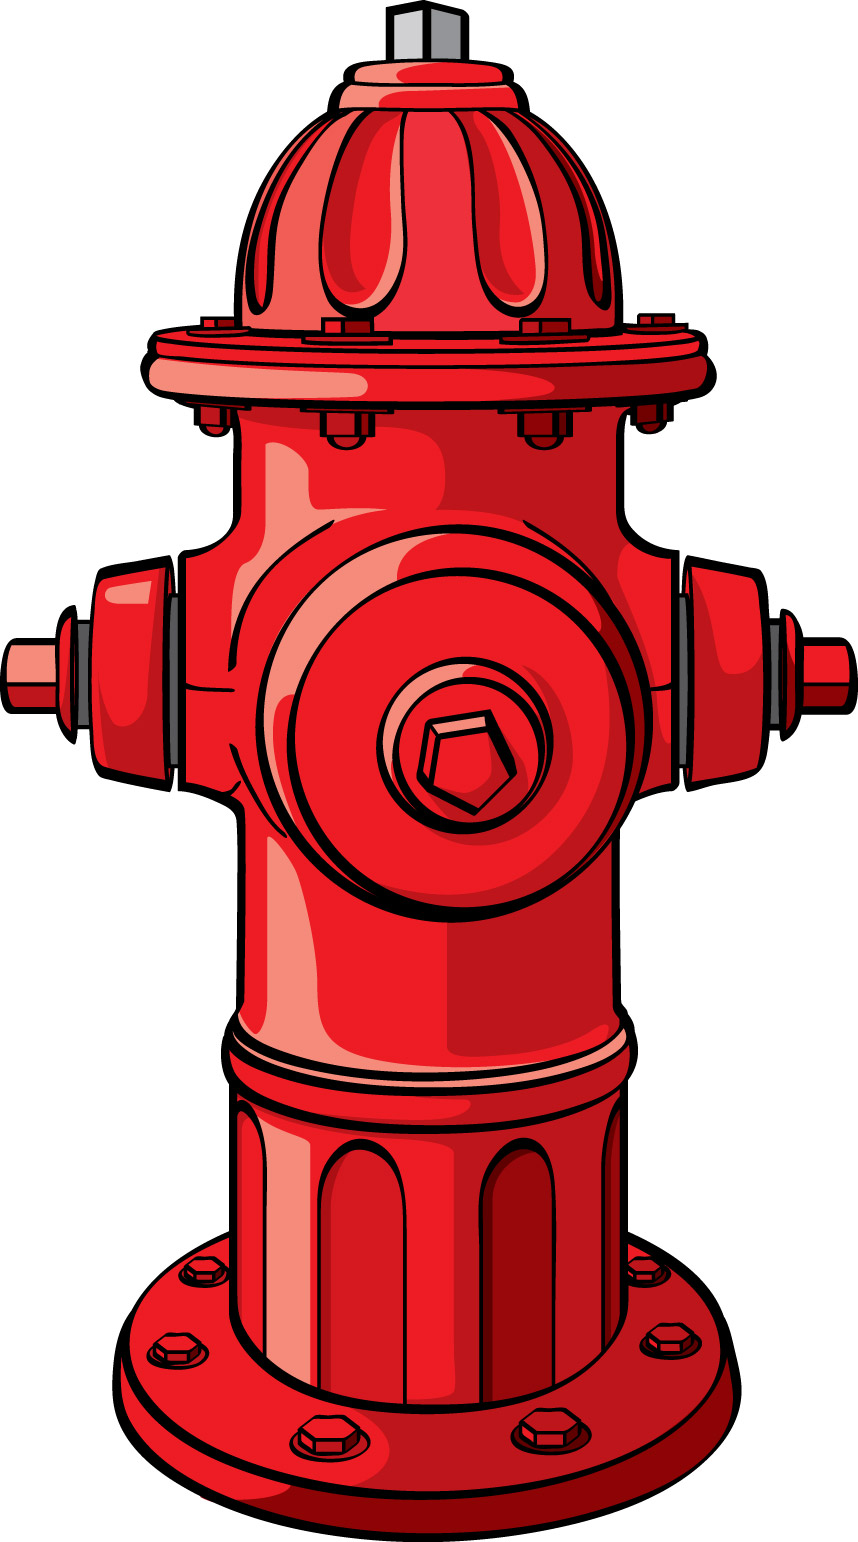 The Use Of Fire Hydrants In The City Of Elyria Is Limited To Fire